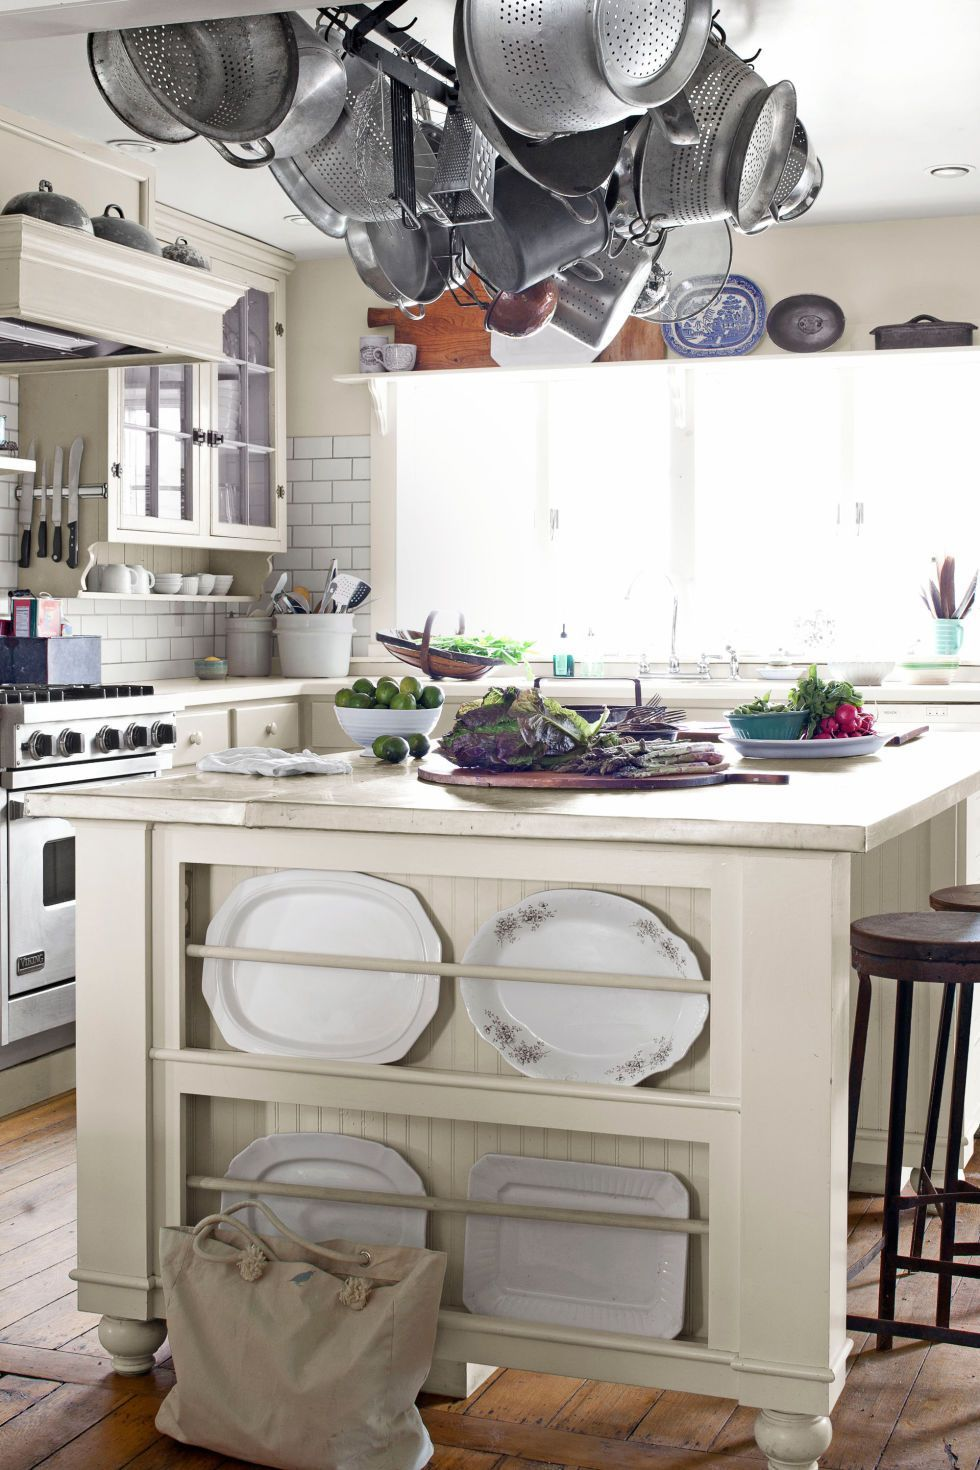 The 16 Best White Kitchen Cabinet Paint Colors For A Clean Airy Vibe White Kitchen Design Country Kitchen Painted Kitchen Cabinets Colors